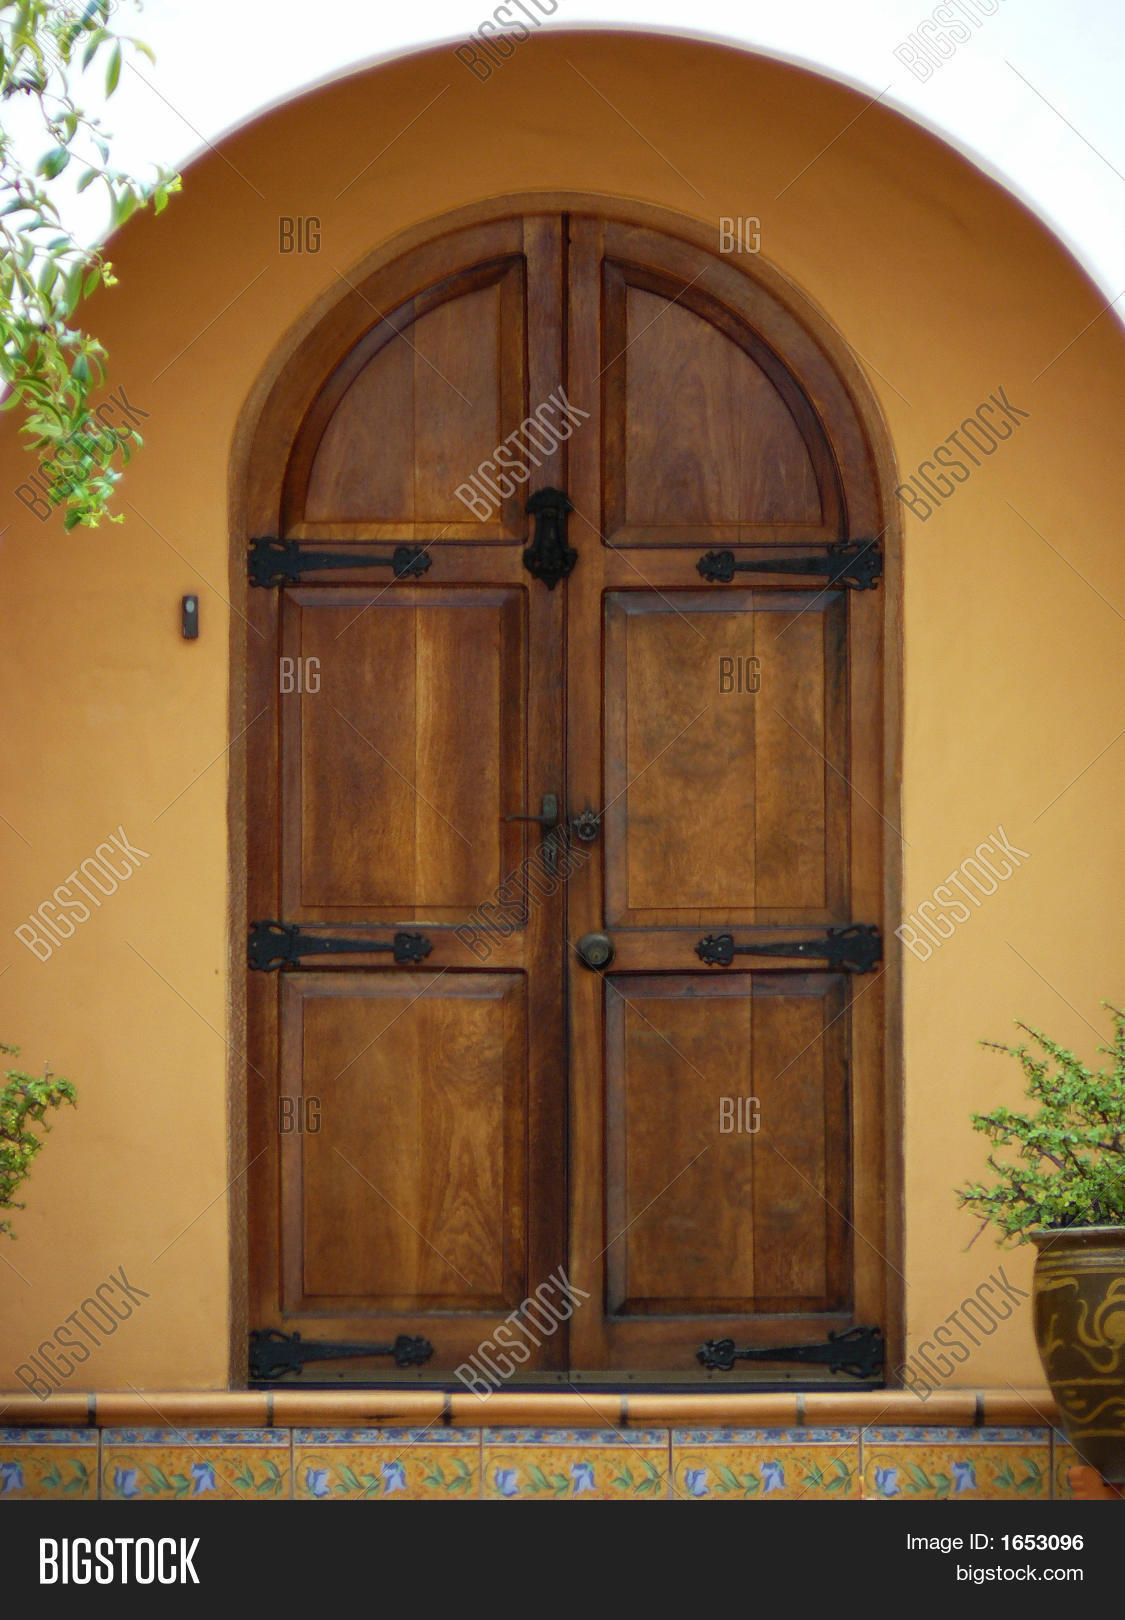 Front Door Arched Image Photo Free Trial Bigstock